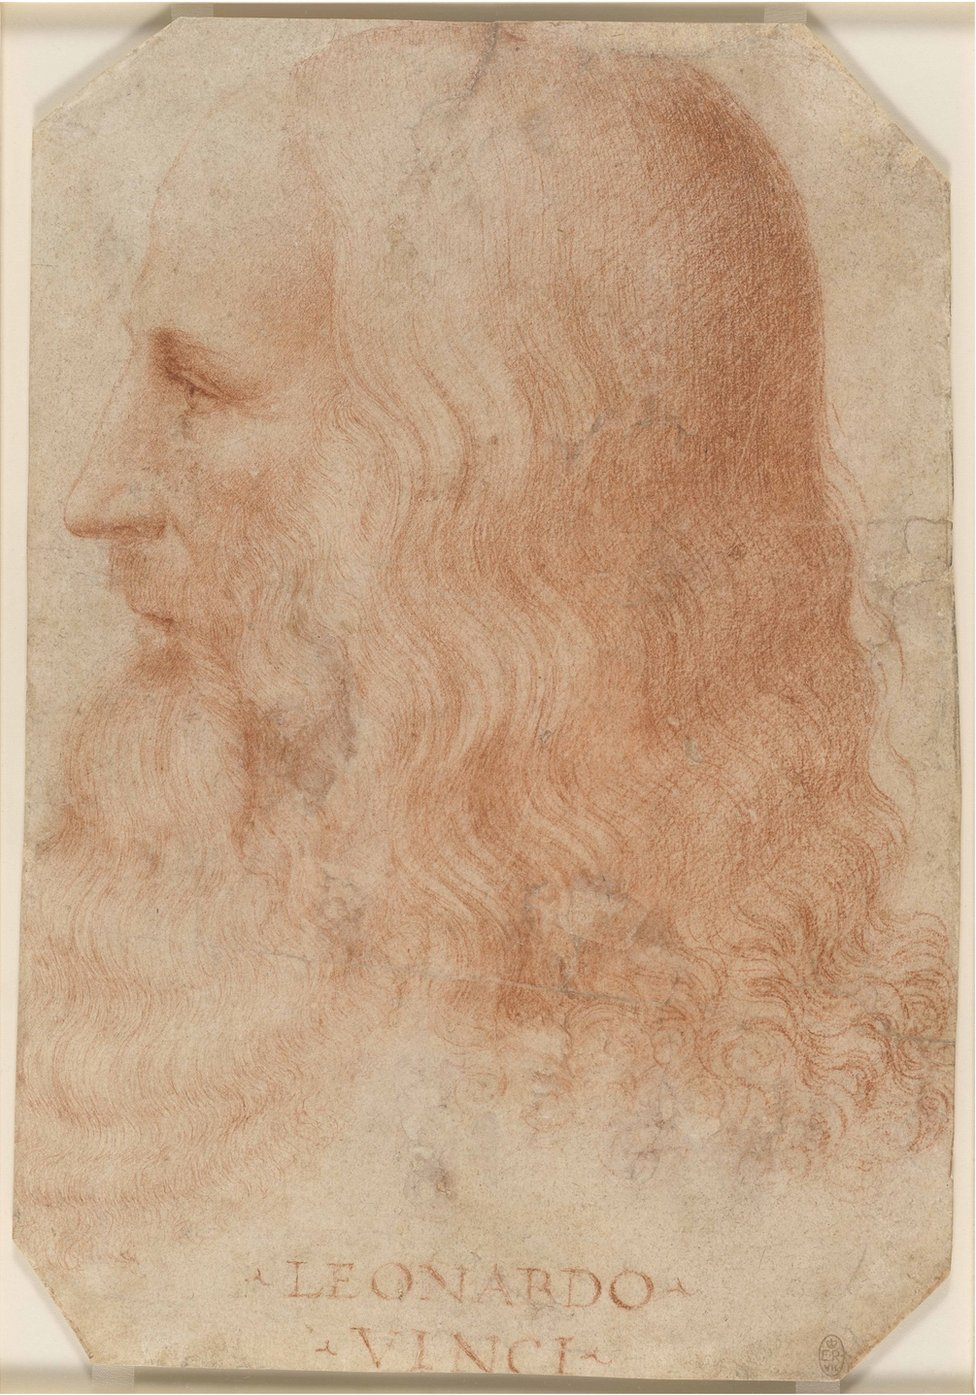 A portrait of Leonardo da Vinci by Francesco Melzi